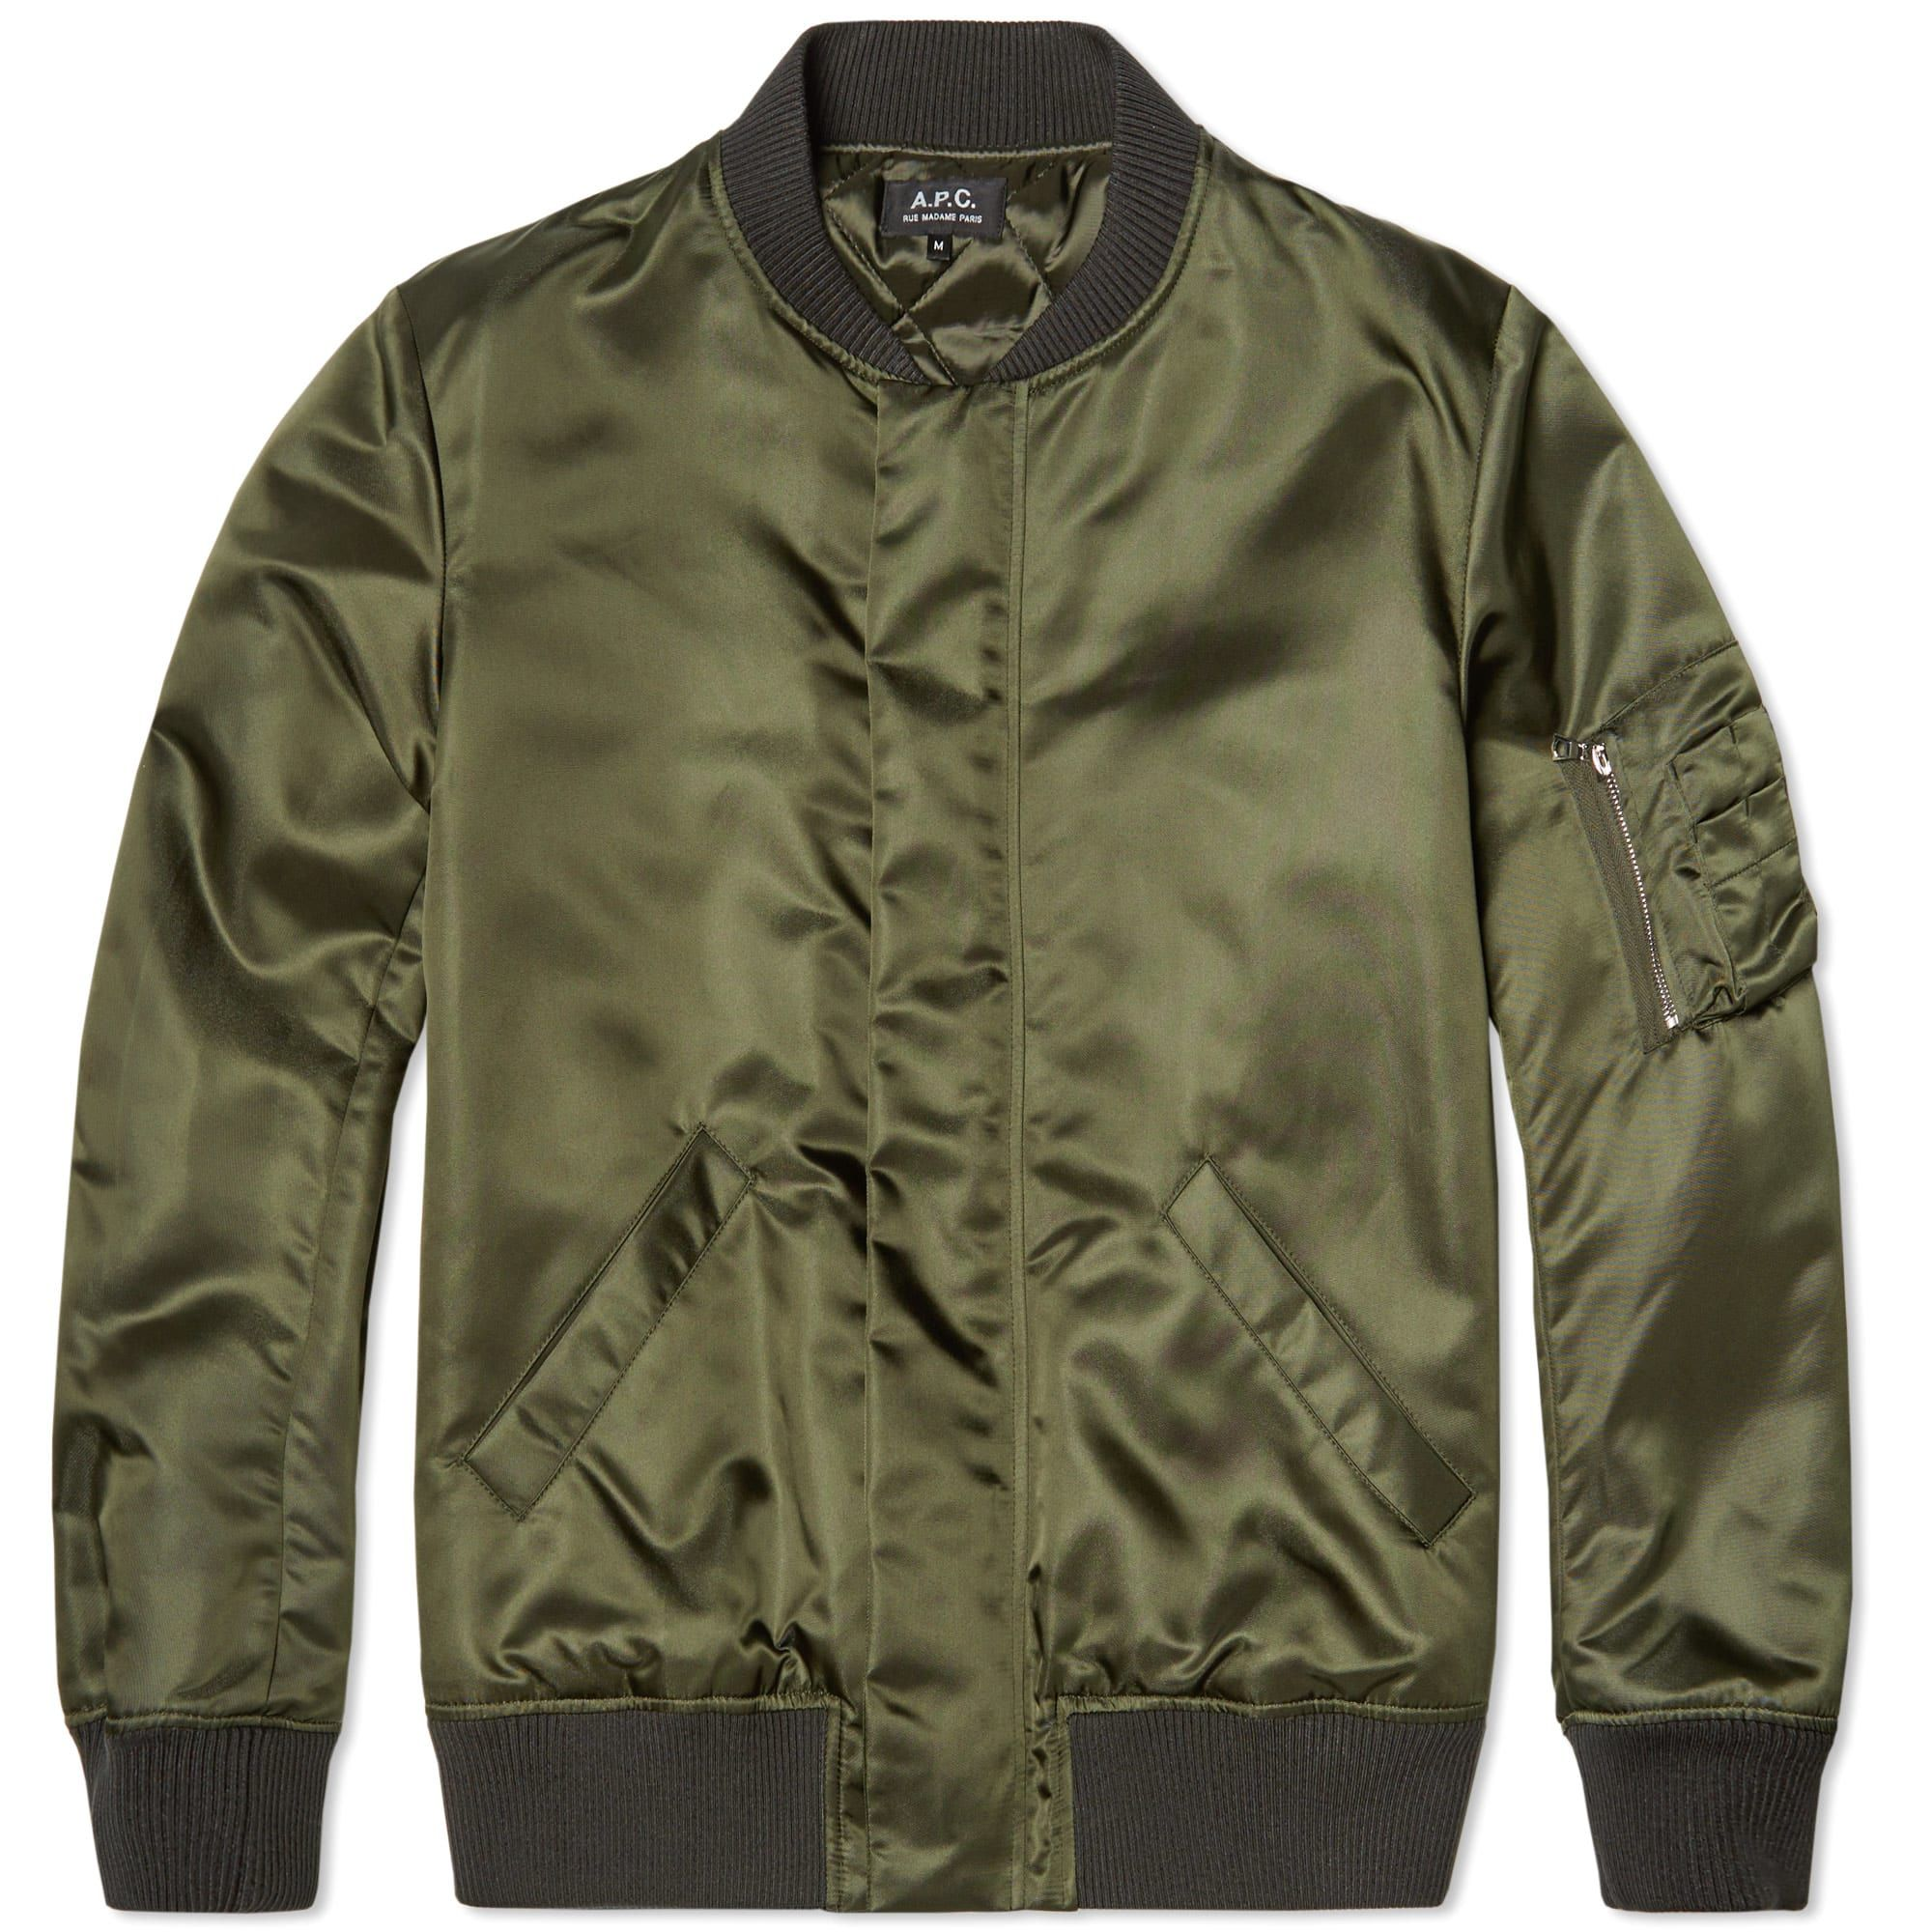 A P C Rudy Bomber Jacket Bomber Jacket Mens Outfits Message T Shirts [ 2000 x 2000 Pixel ]